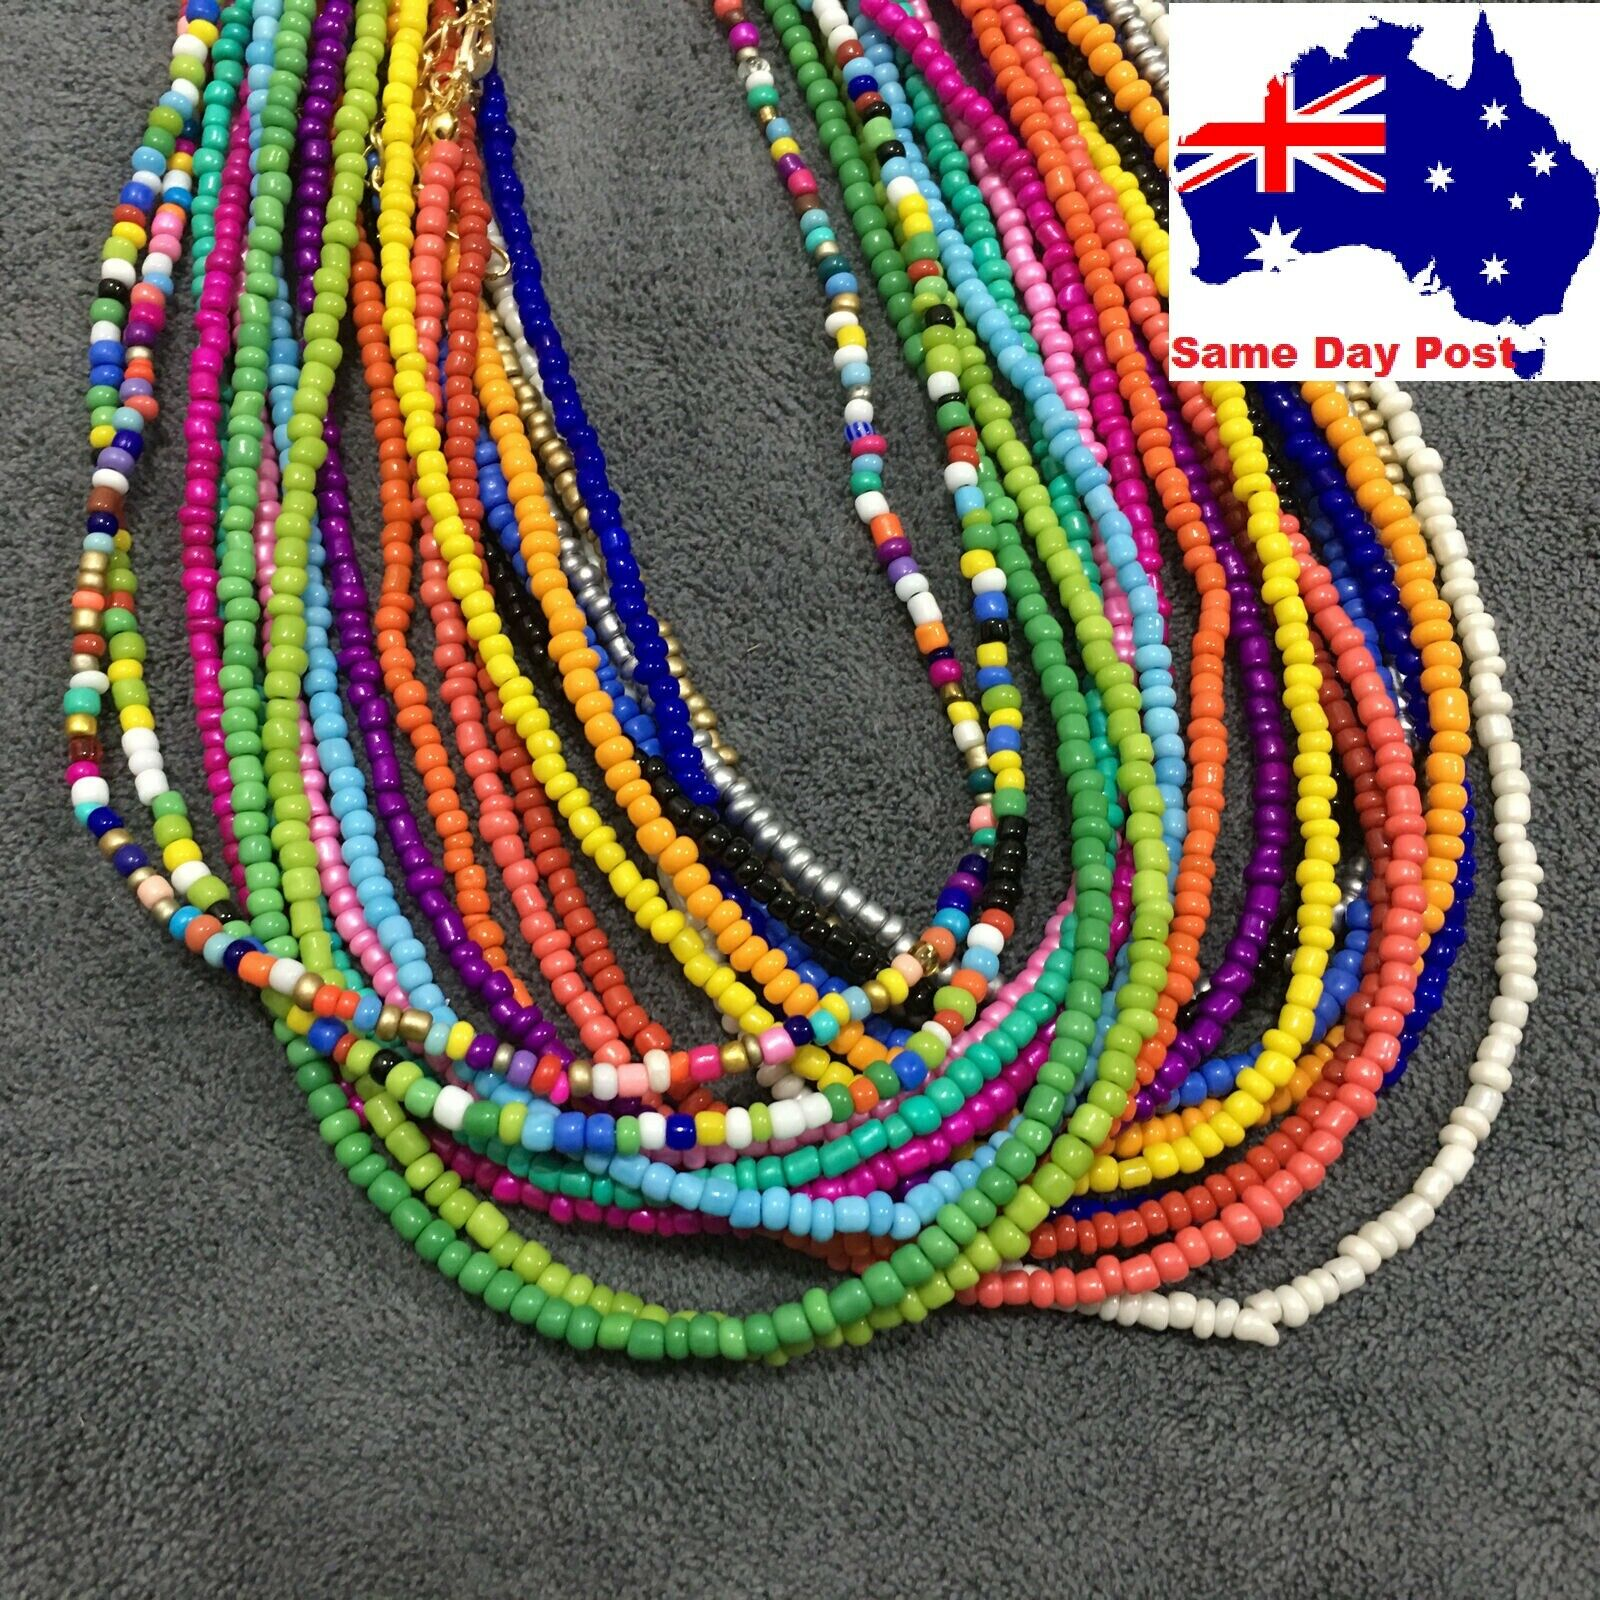 Jewellery - Beaded Seed Bead Gold Strand Necklace Women String Short Necklace Jewellery